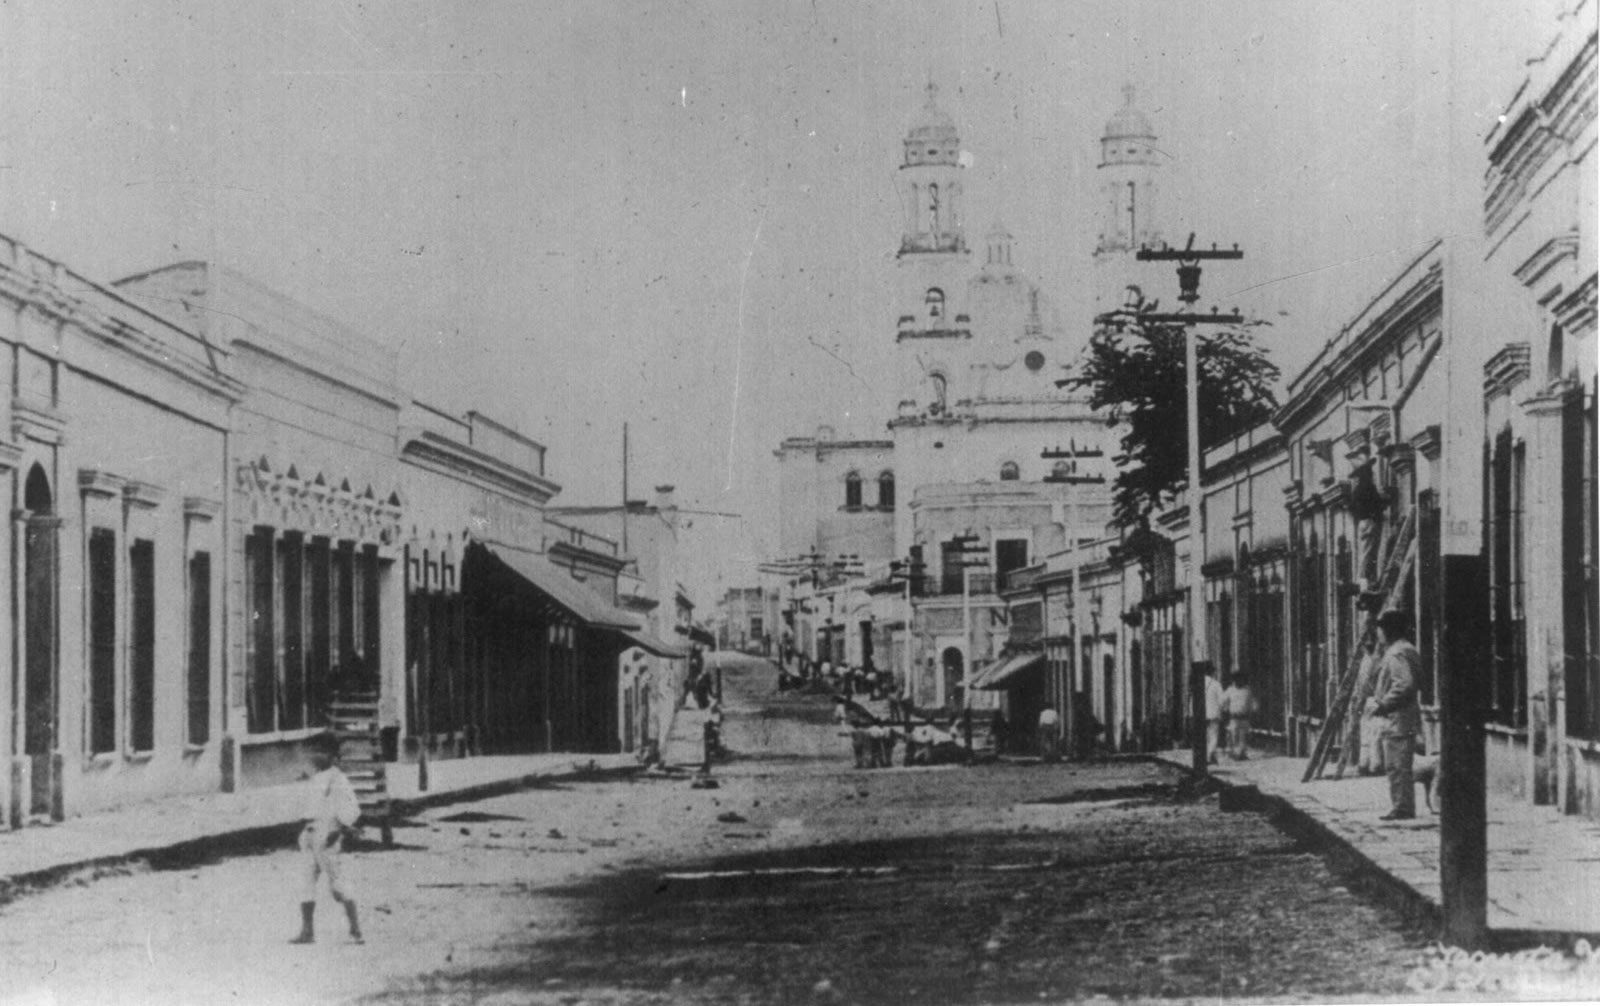 Undated Photo of Culiacán, probably 19th Century